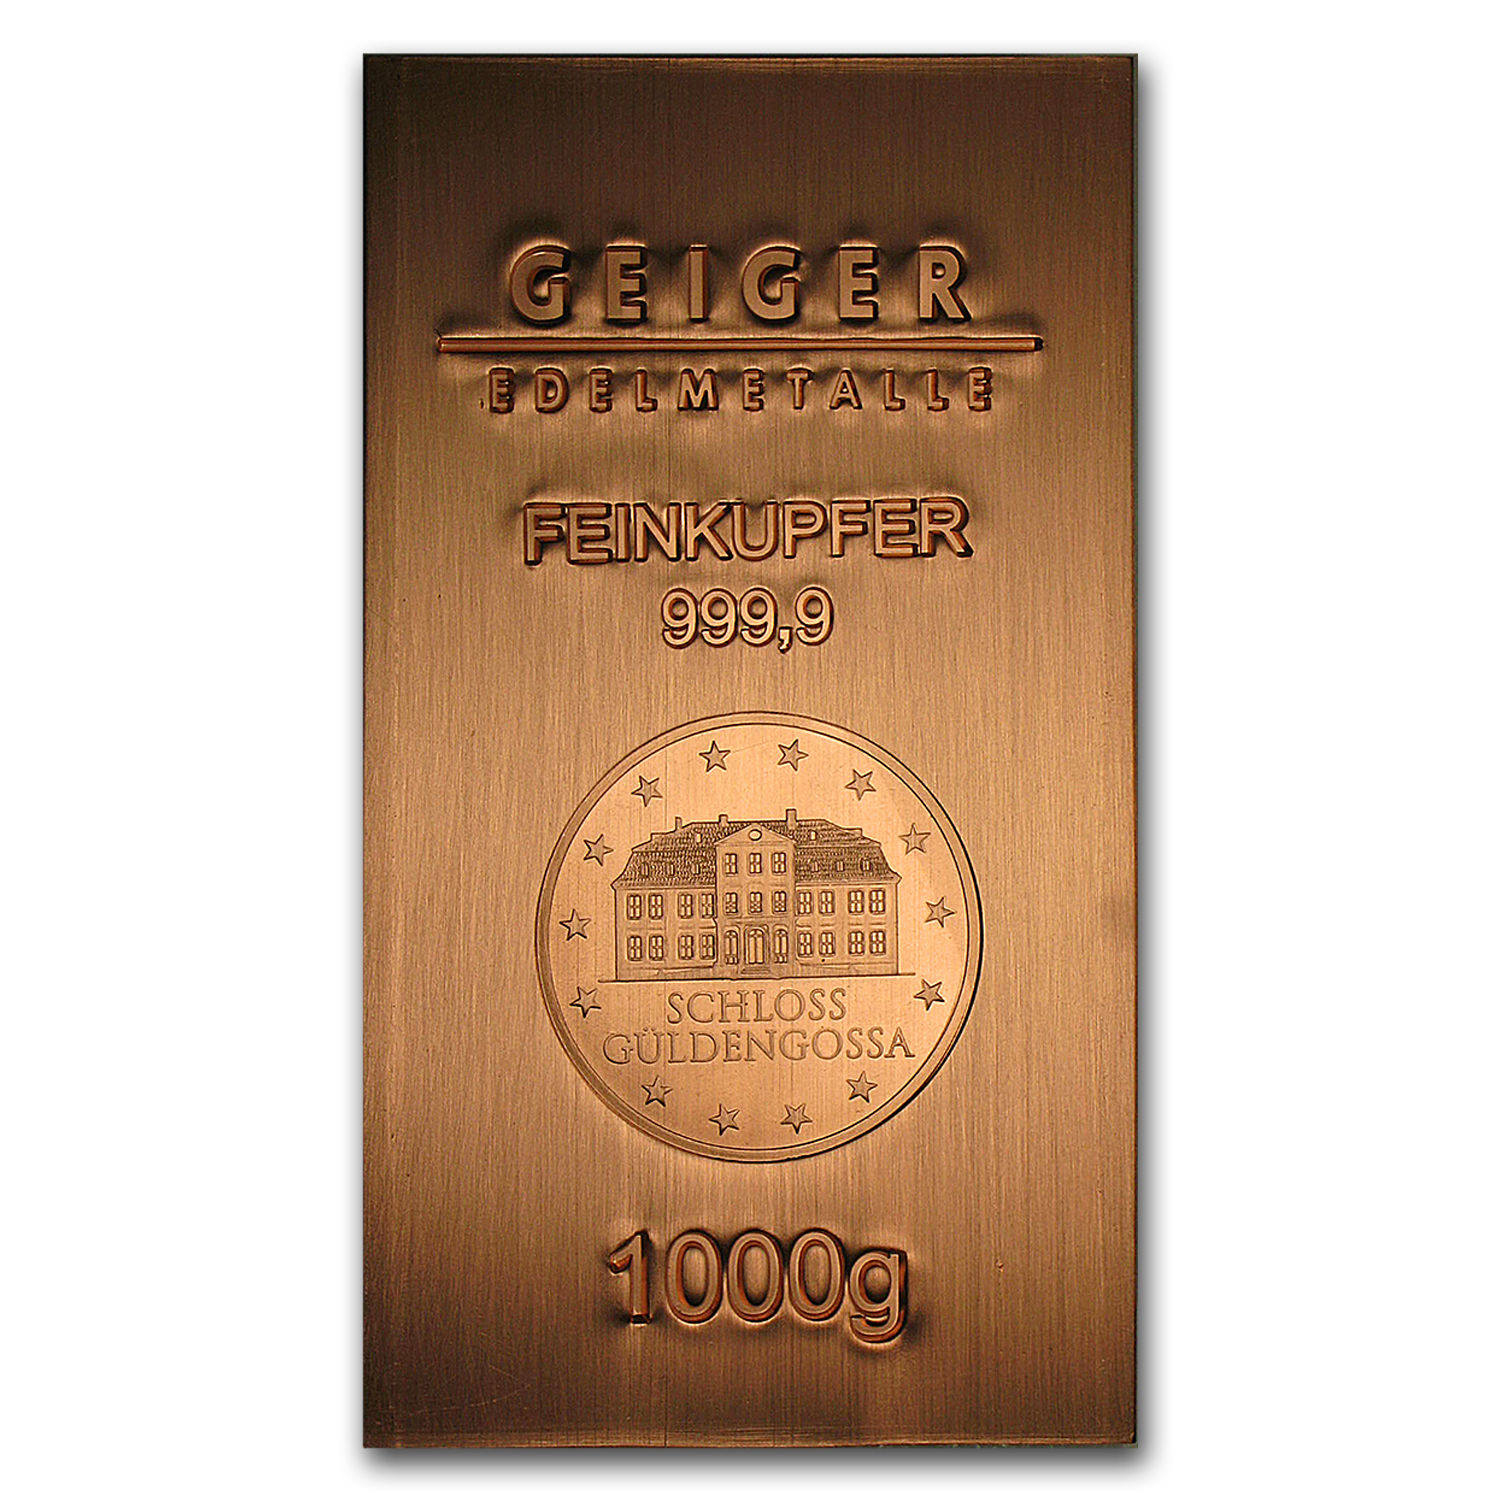 1000 gram Copper Bar - Geiger (Industry Line Series, .9999 Fine)